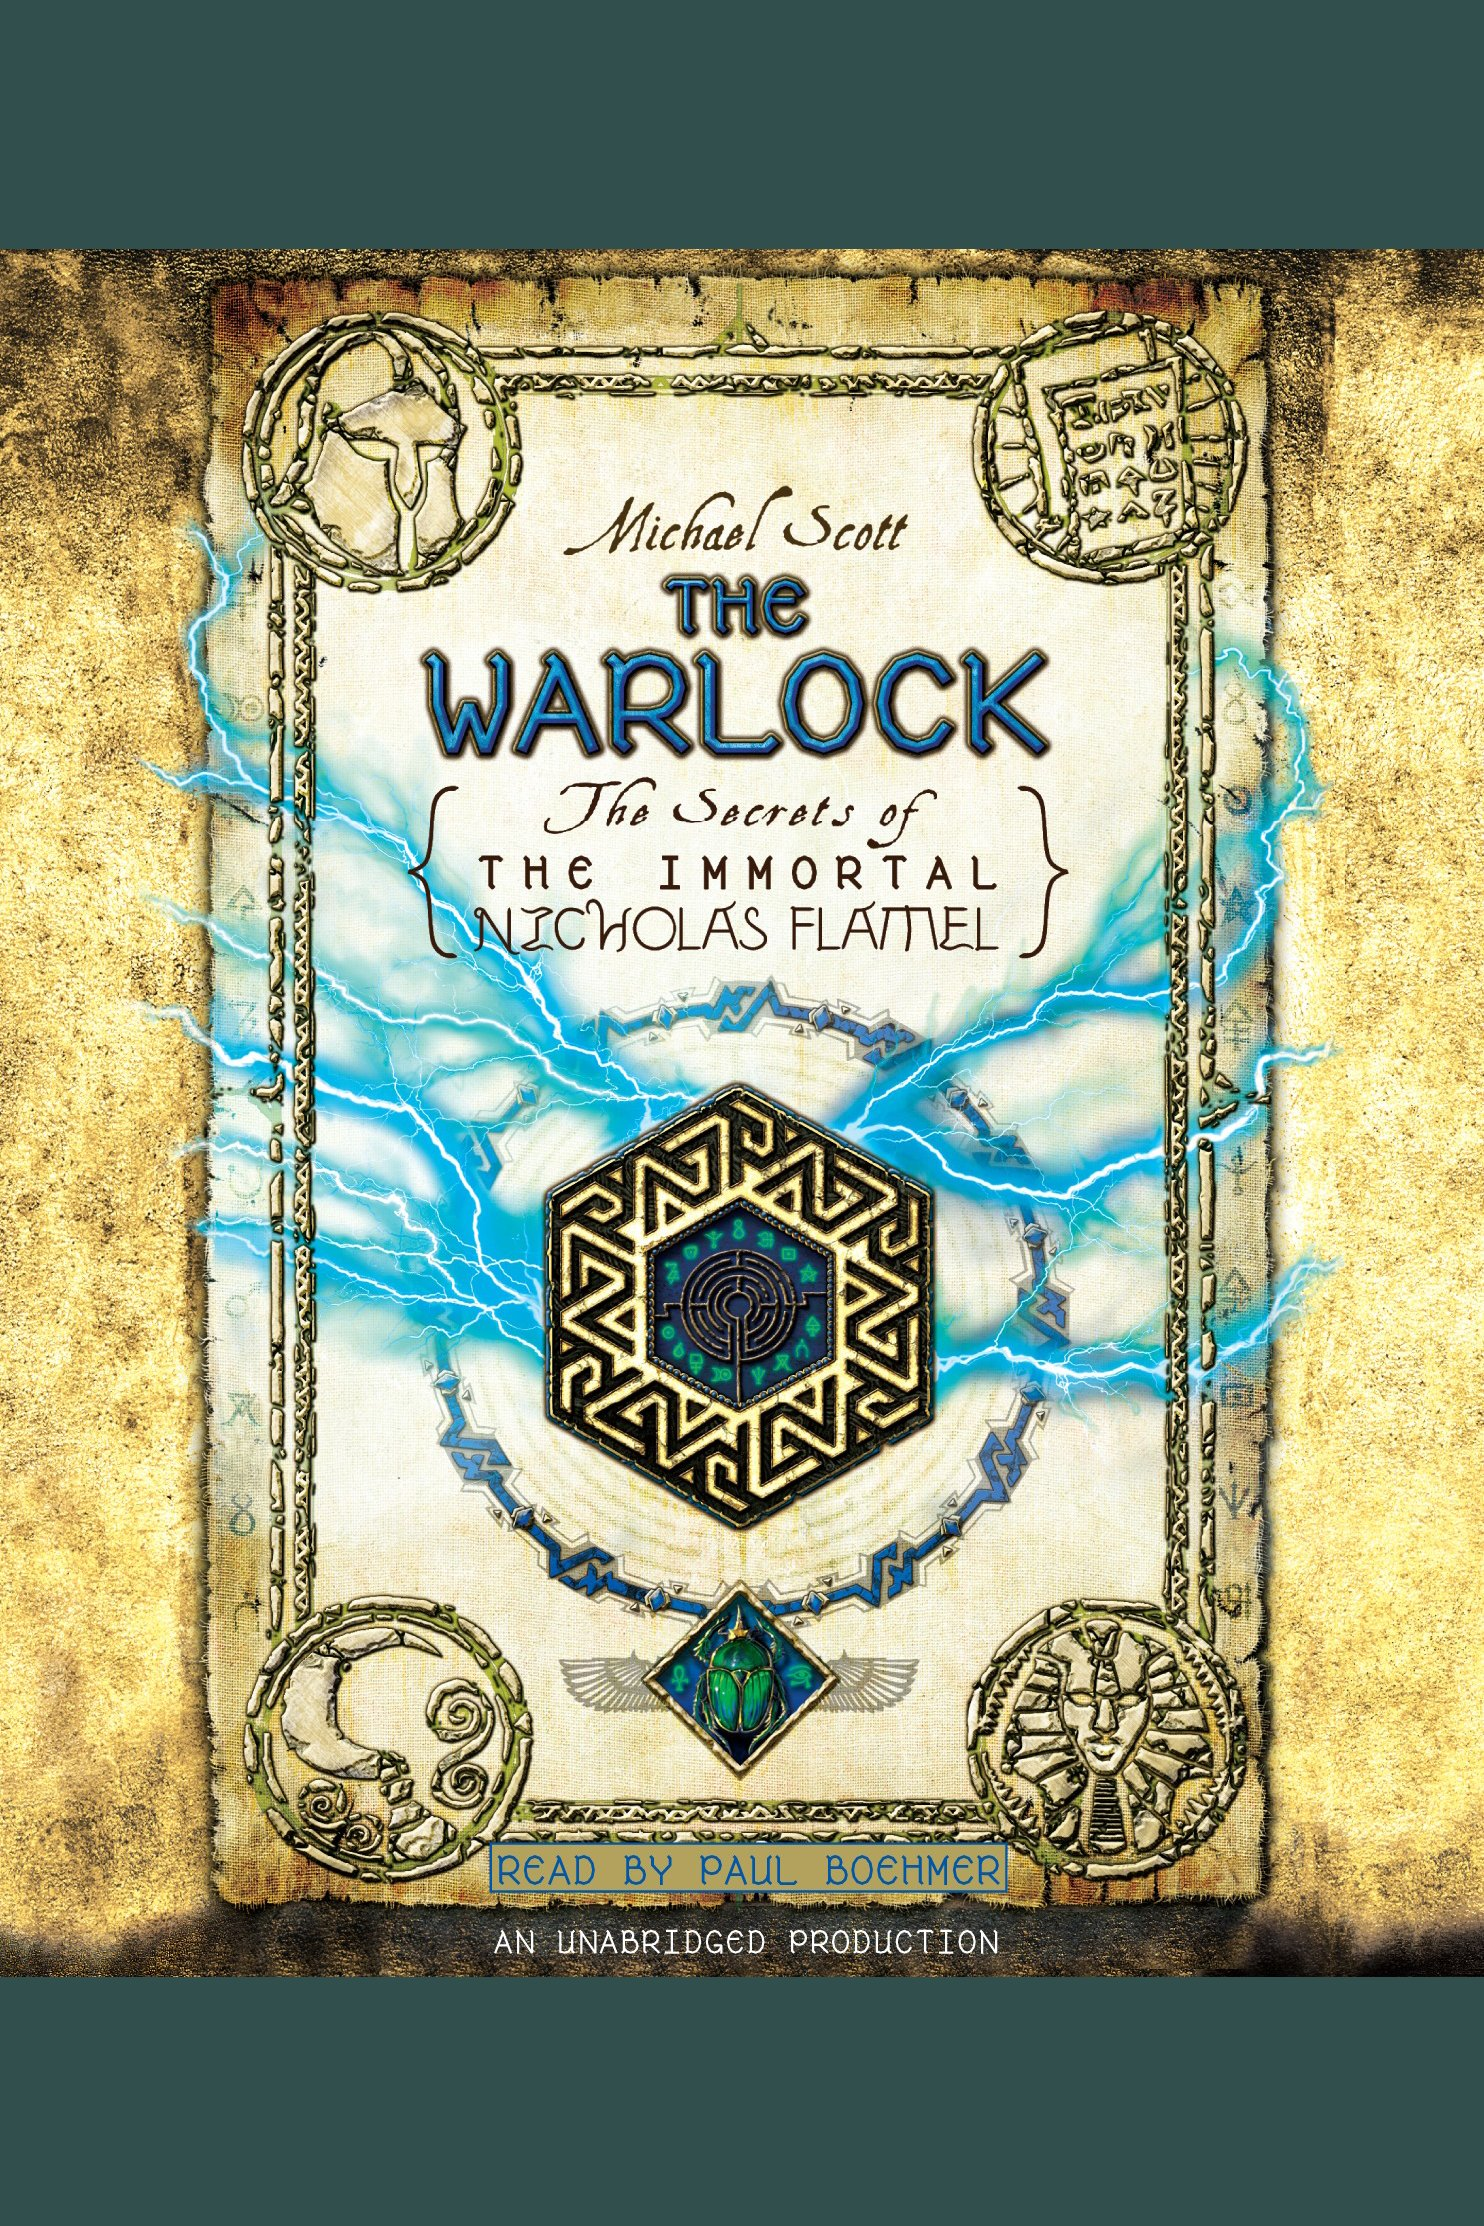 The warlock cover image